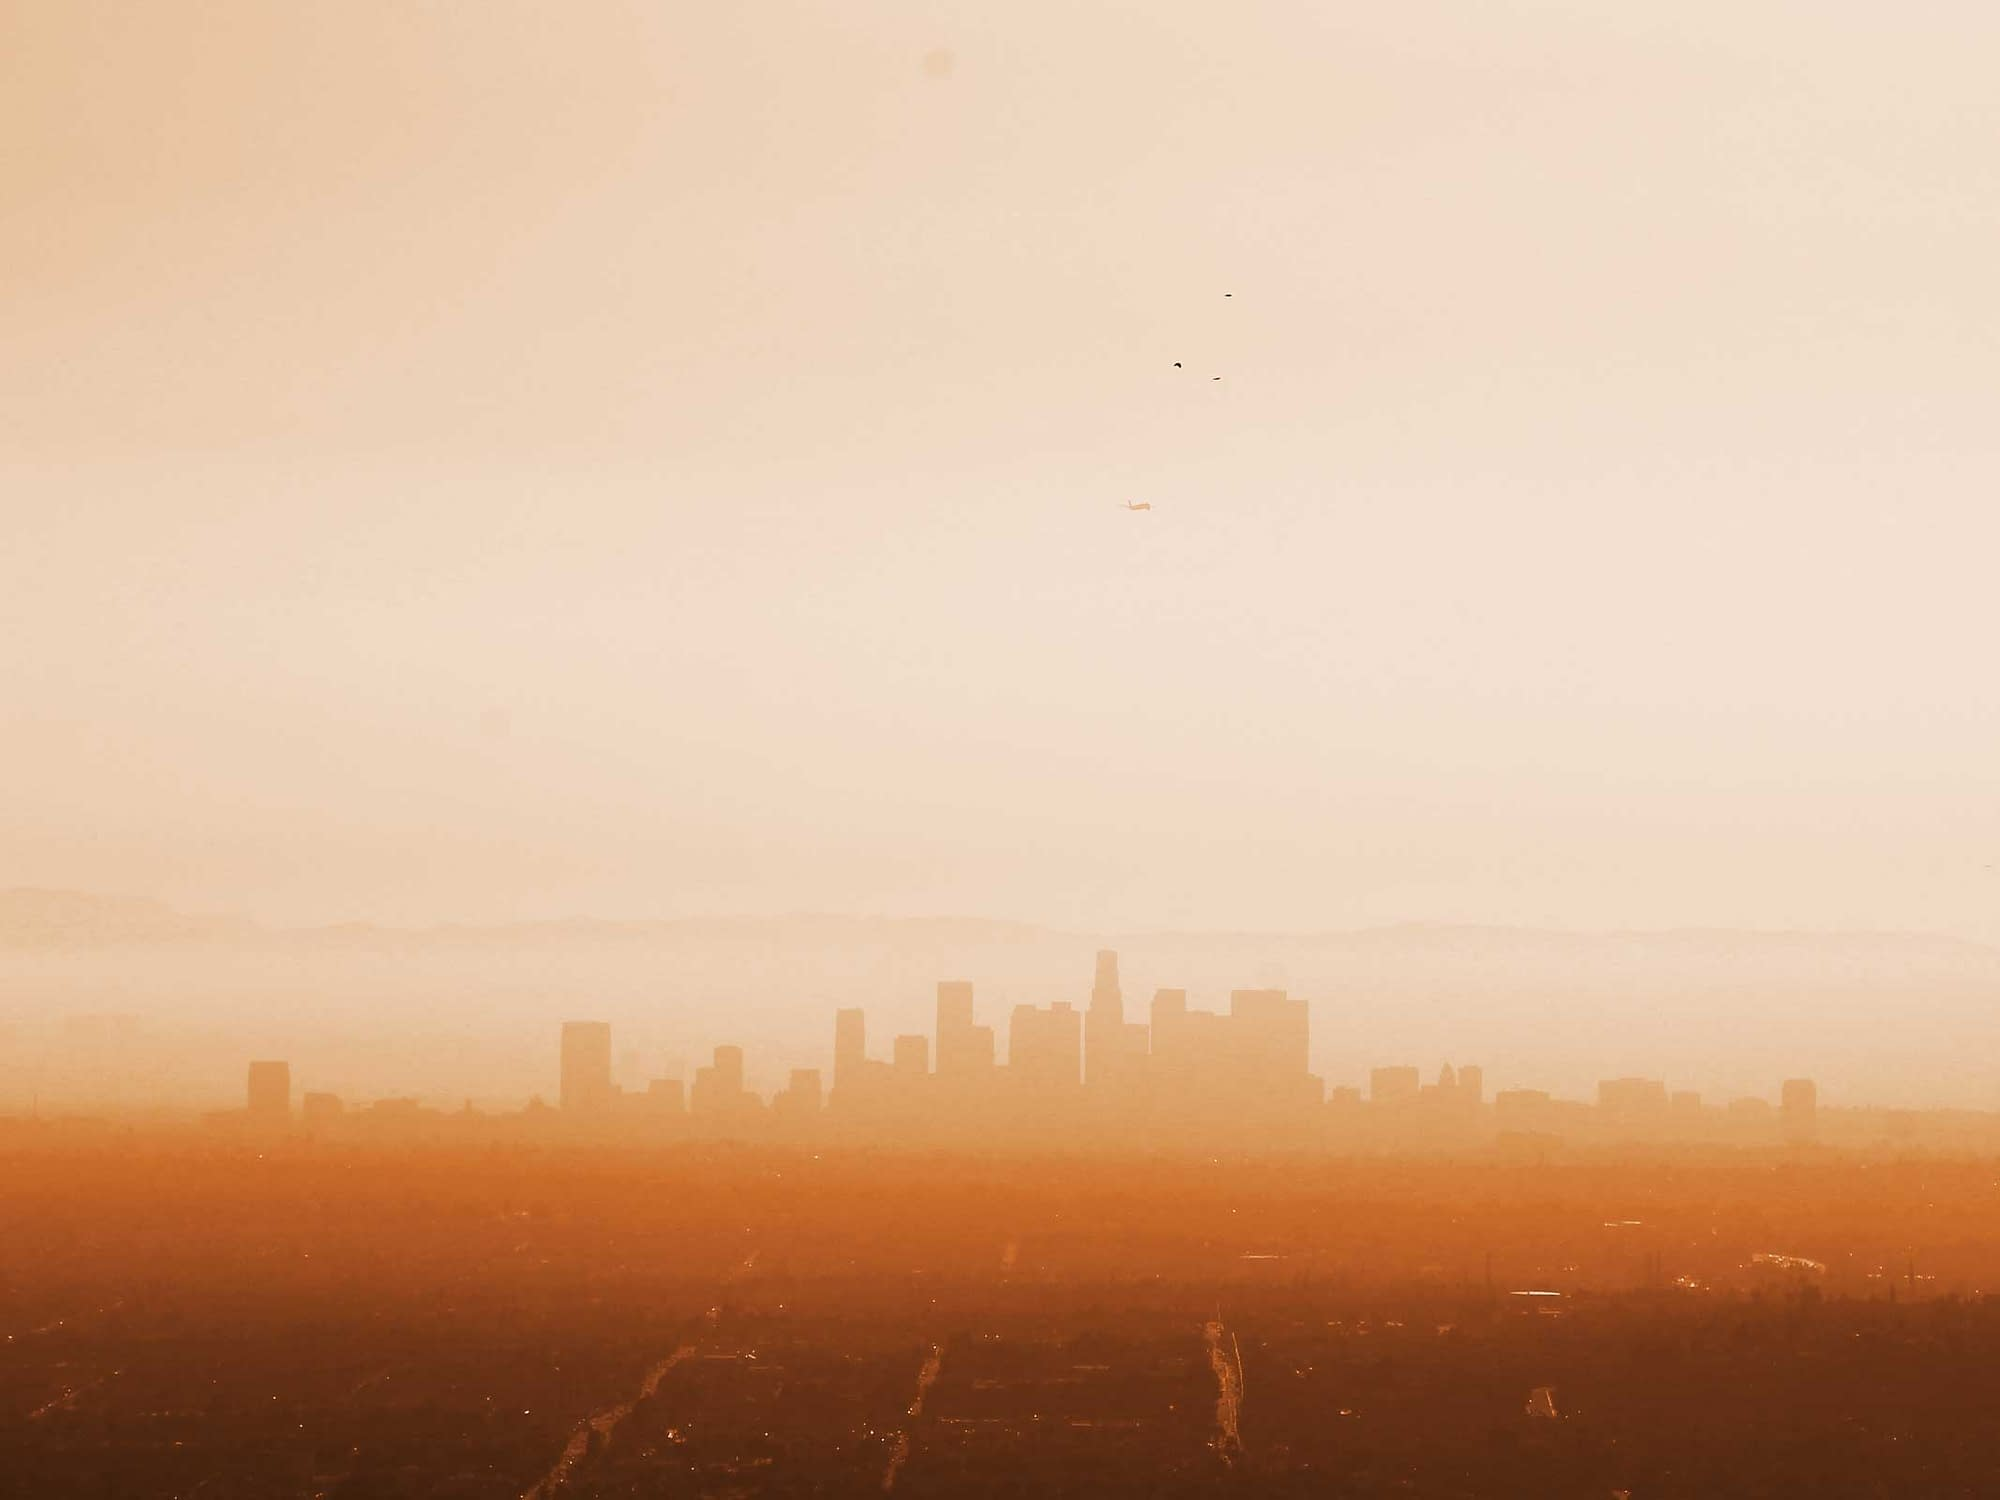 Smog Tests Play An Important Role In Reducing Air Pollution